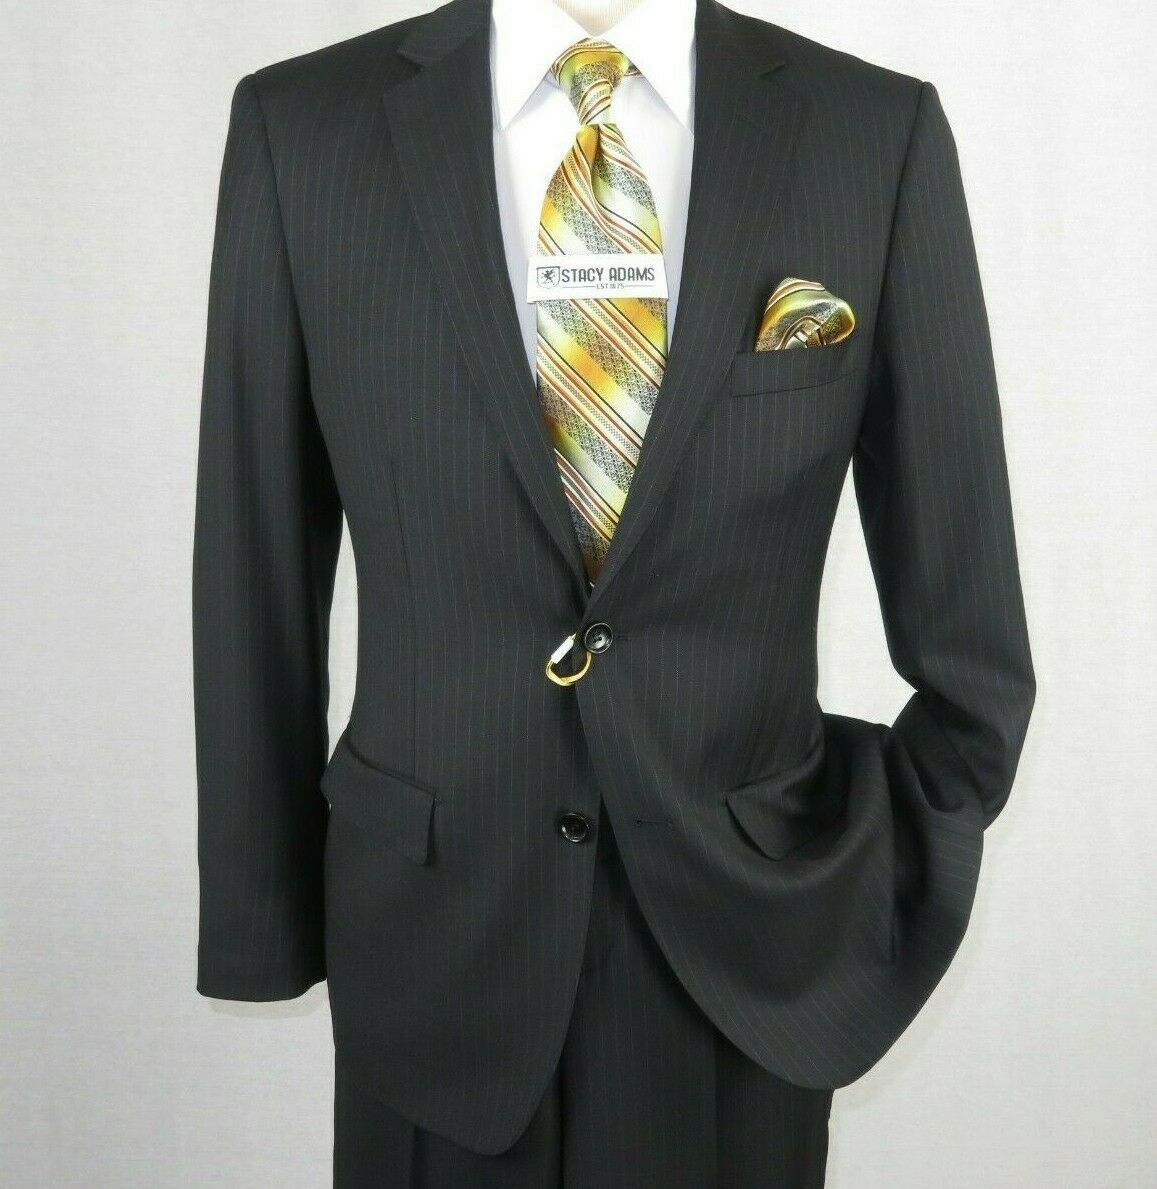 Primary image for Men MANTONI Suit 100% Wool Classic Pinstripe 2 Button Regular Fit M87184-1 Black